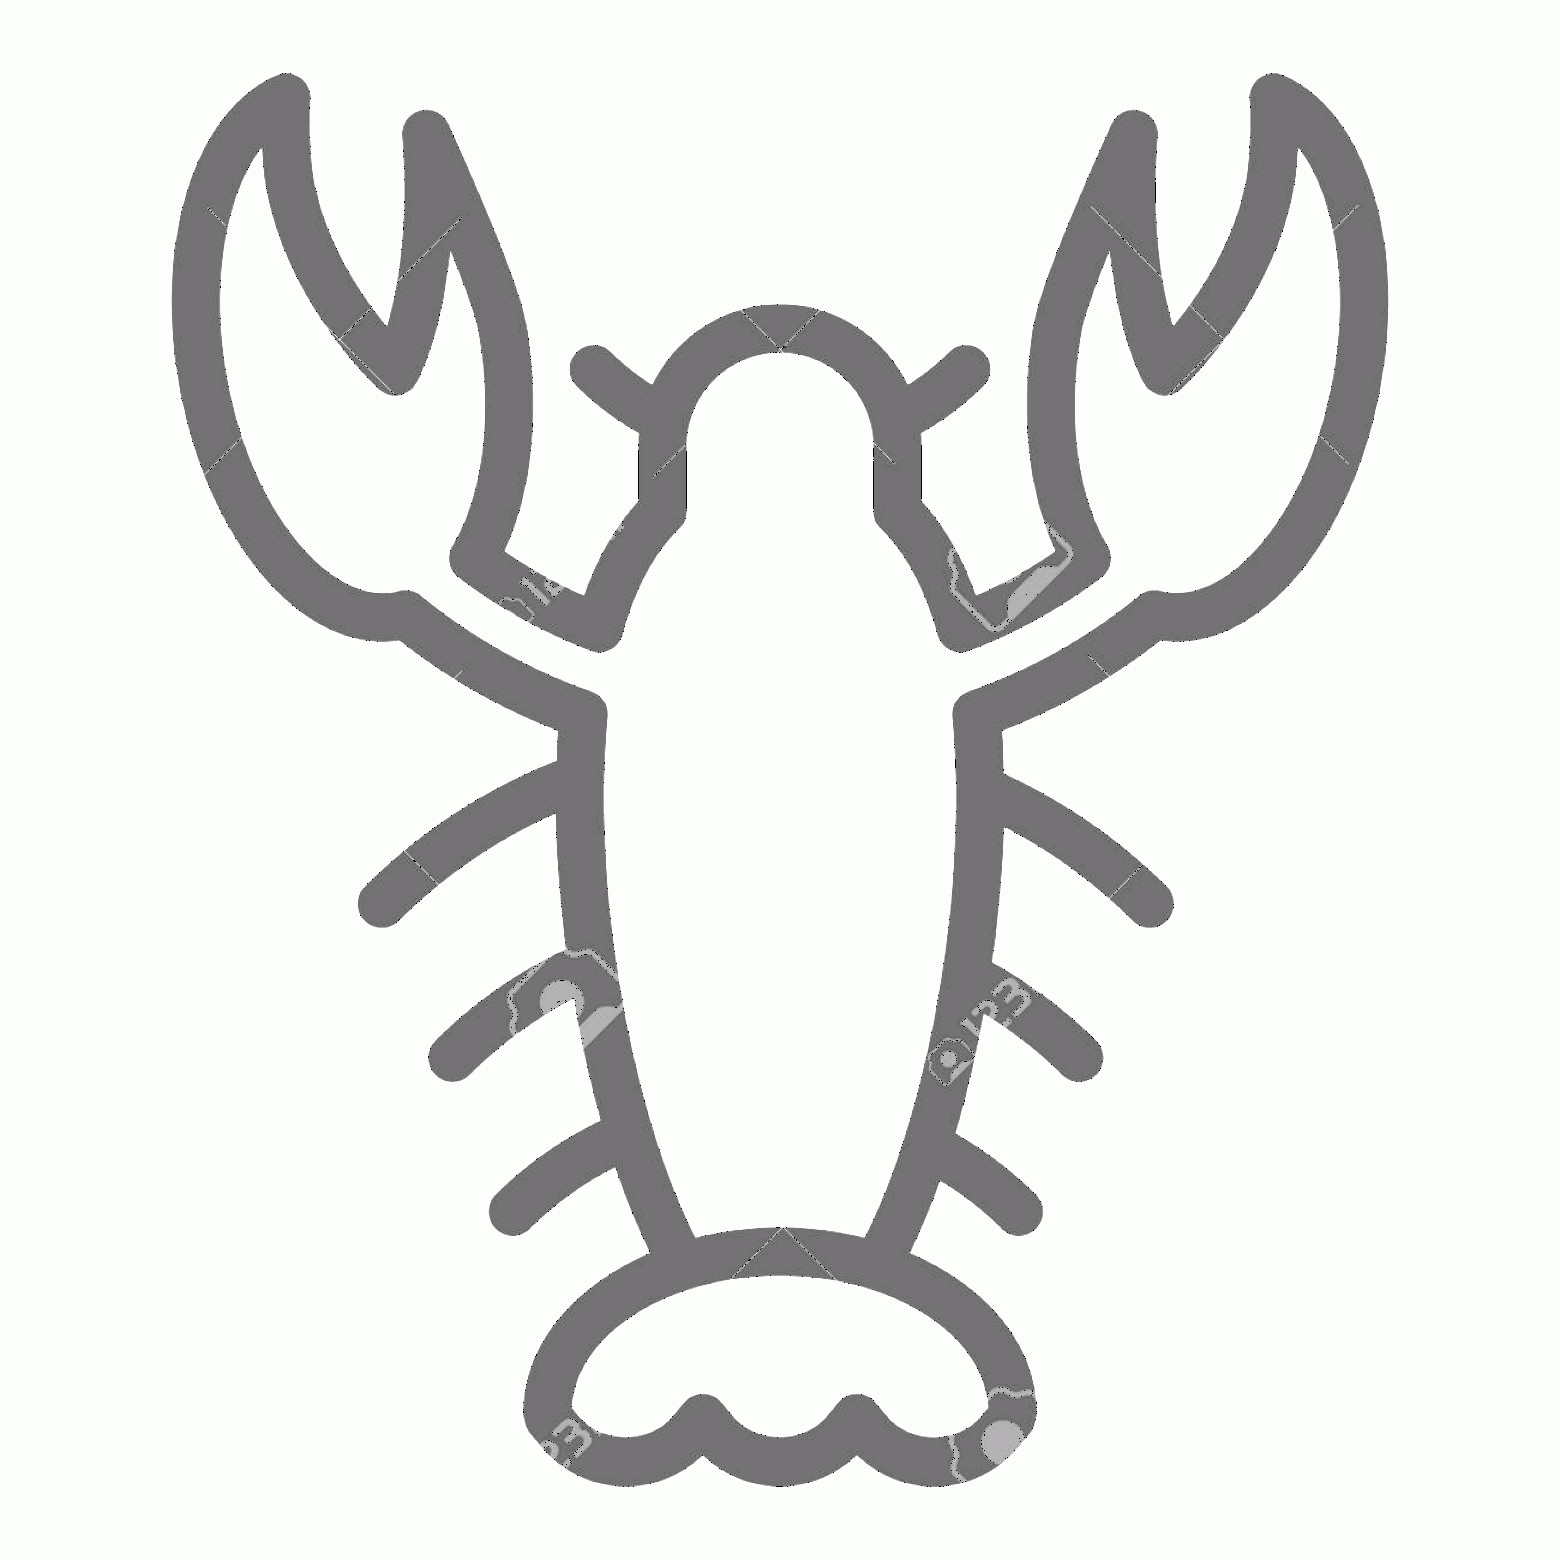 Crawfish Vector: Photostock Vector Crayfish Line Icon Crawfish Vector Illustration Isolated On White Seafood Outline Style Design Desig